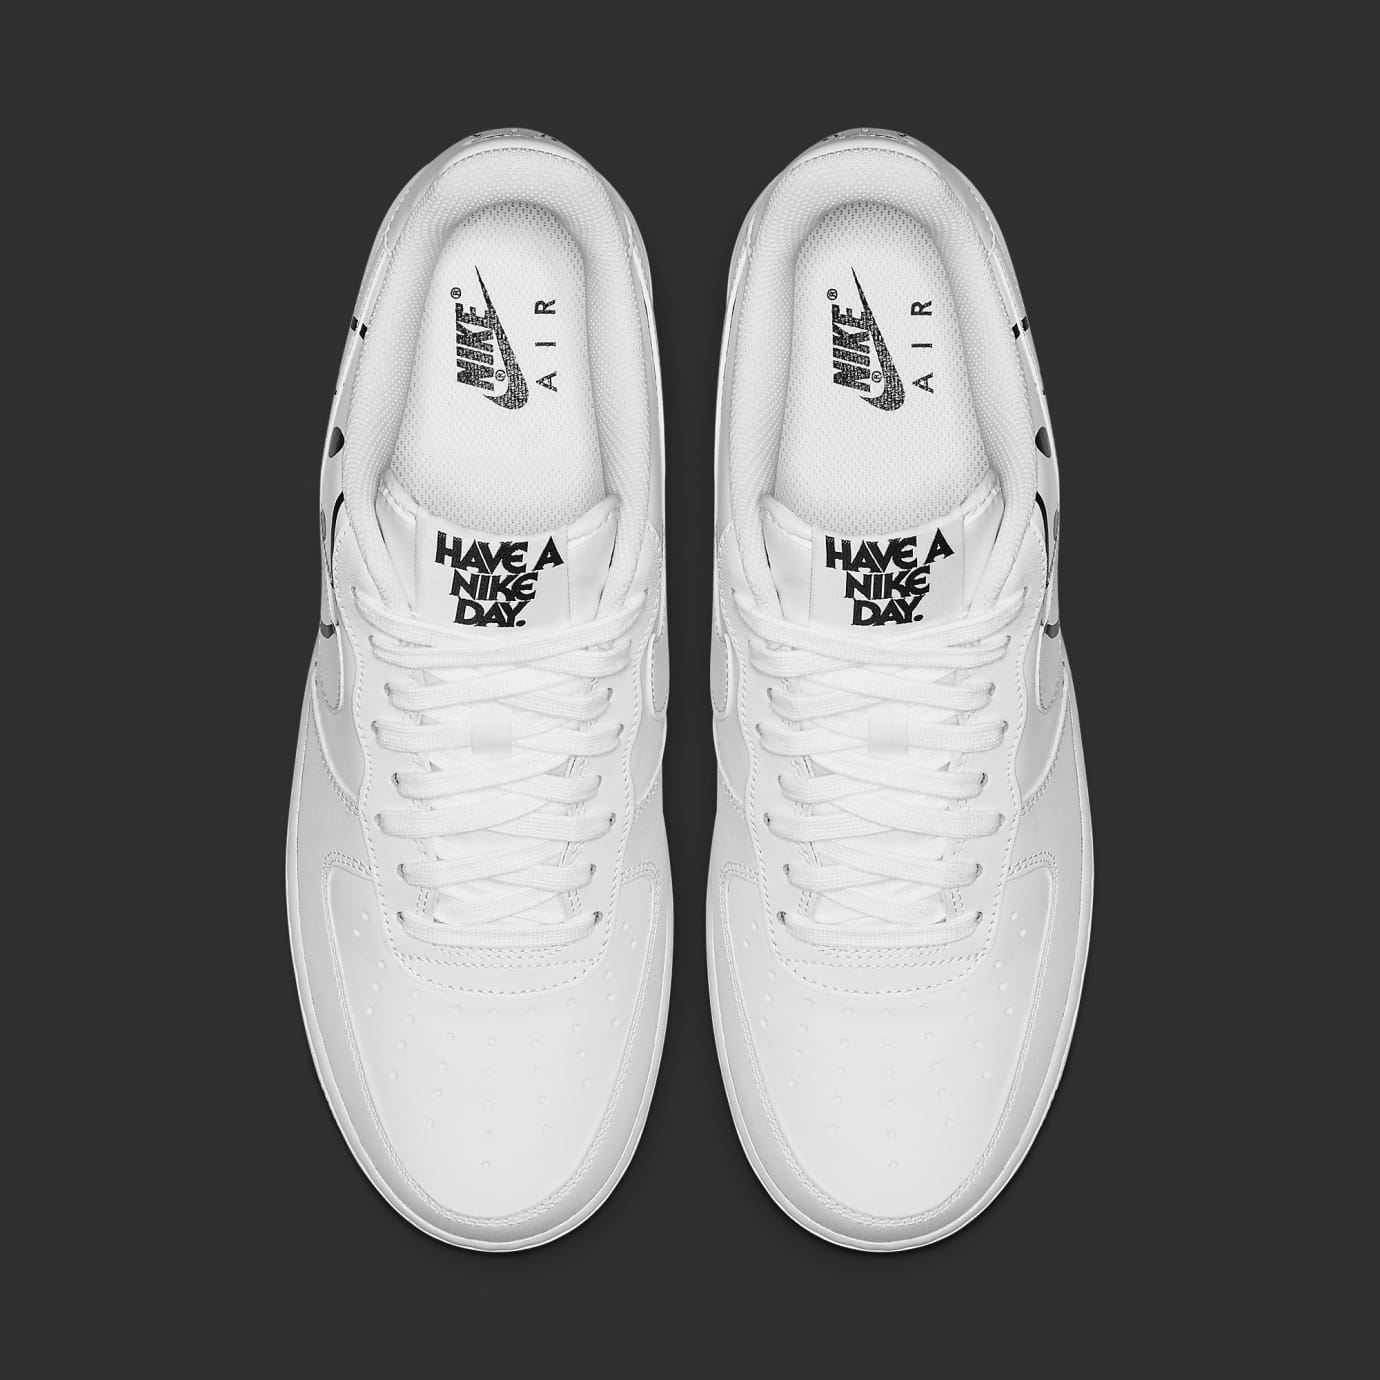 huge selection of f5cdb 993d1 Image via Nike nike-air-force-1-low-have-a-nike-